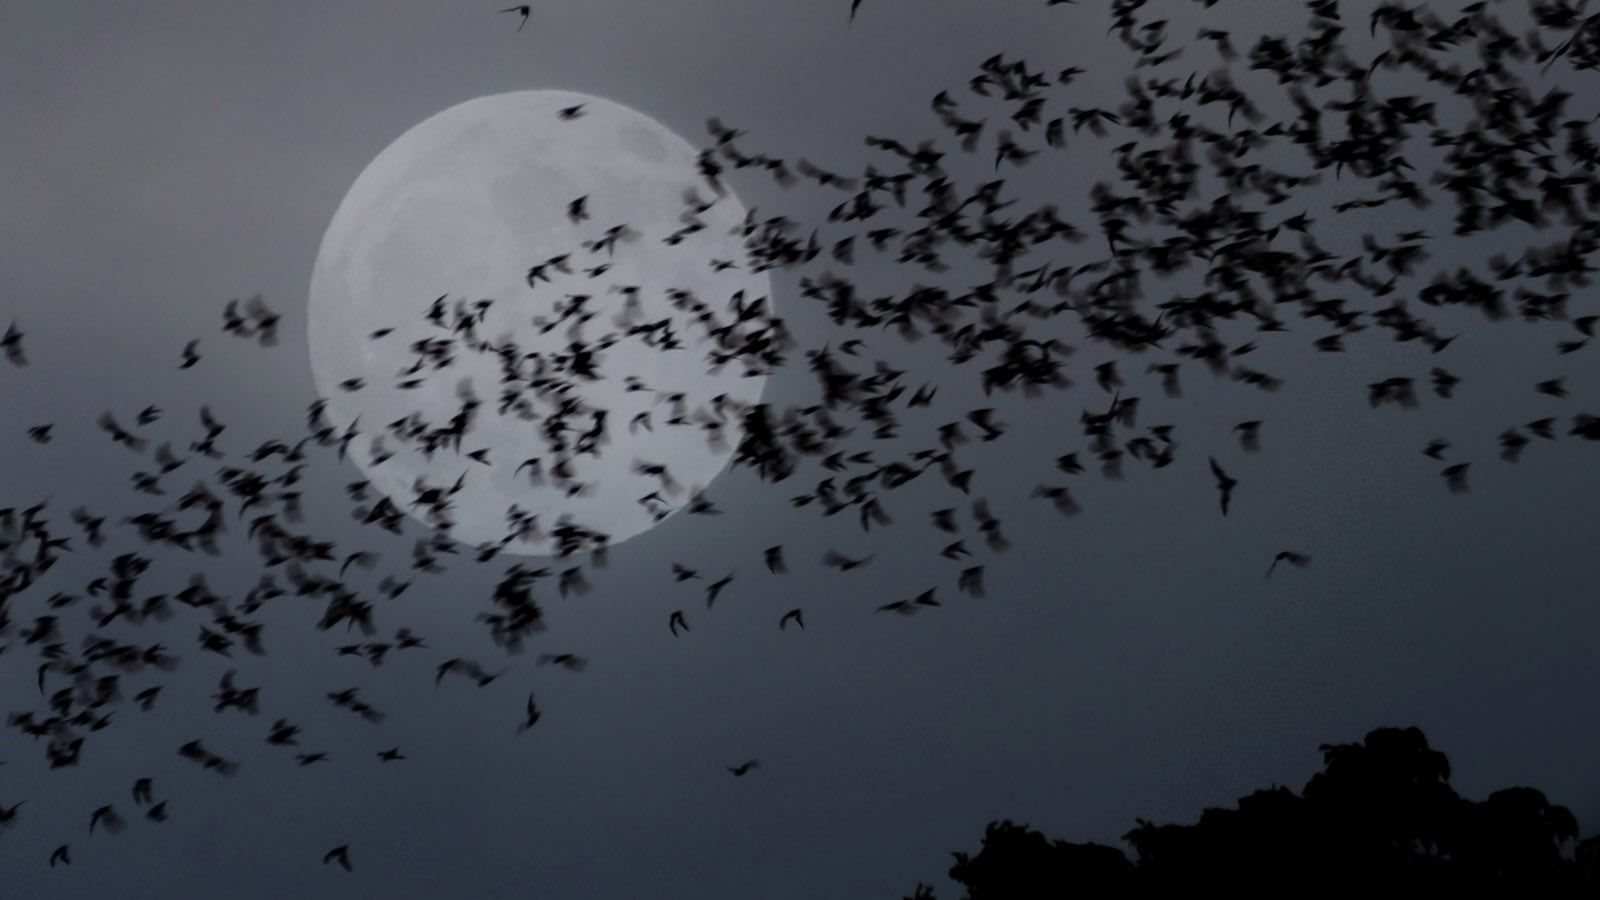 Bats flying in front of a full moon